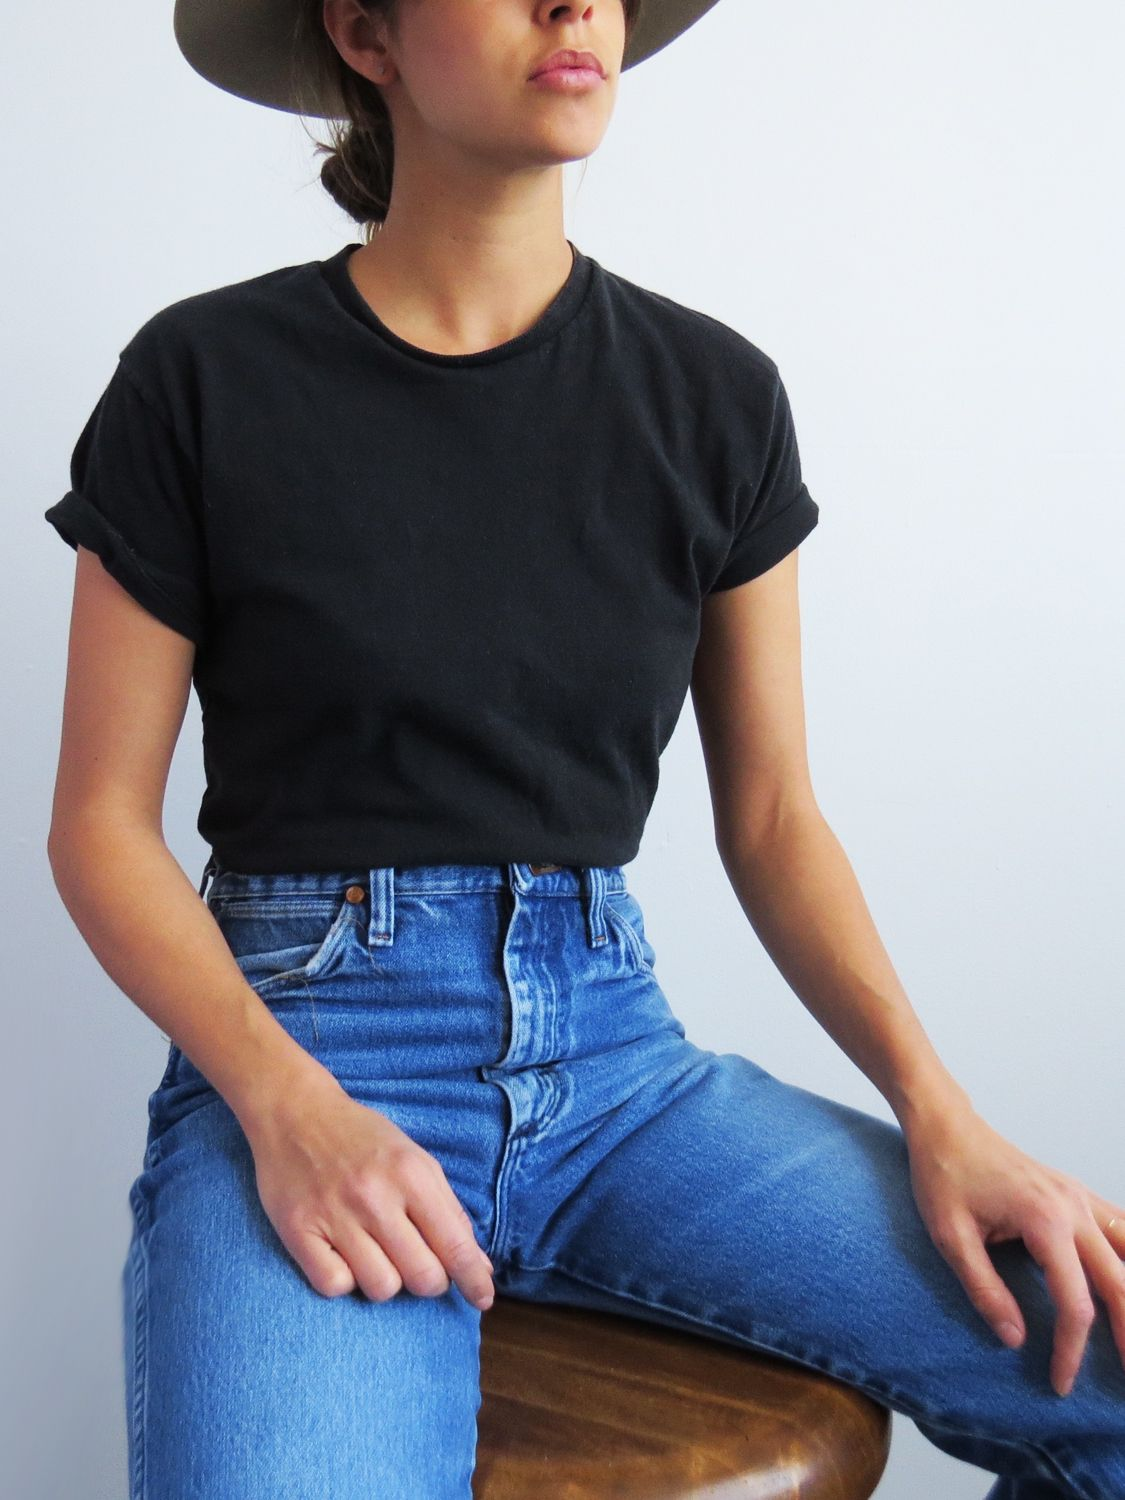 Black t shirt and jeans - Vintage Wrangler High Waist Jeans